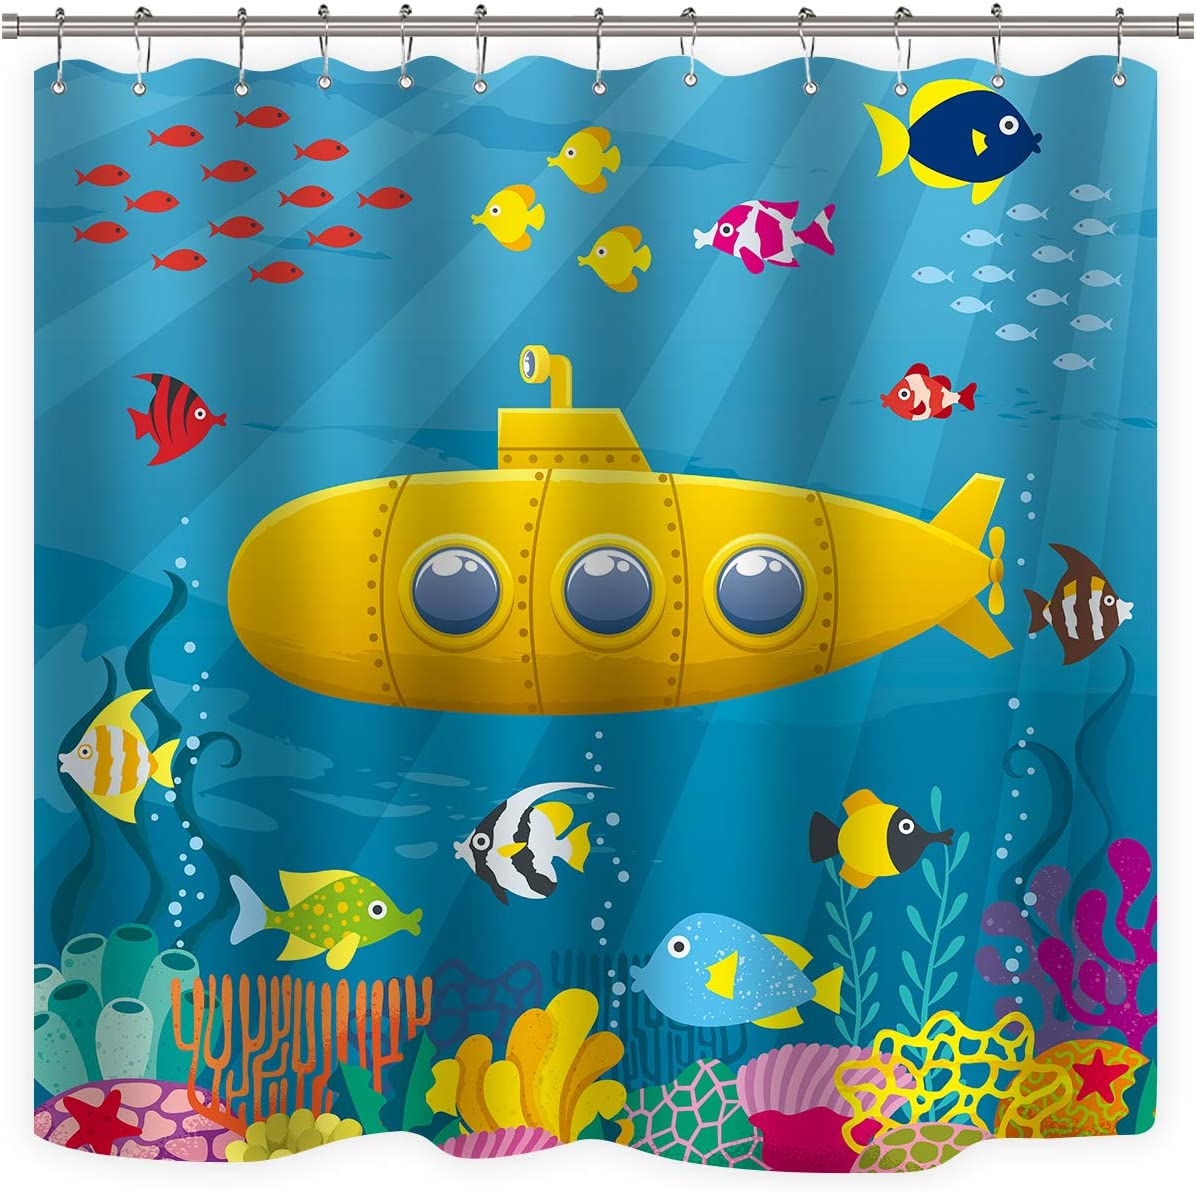 Riyidecor Kids Shower Curtain Marine Underwater Ocean Fish Coral Yellow Submarine Colorful Decor Fabric Bathroom 72Wx72H Inch 12 Pack Plastic Shower Hooks Included